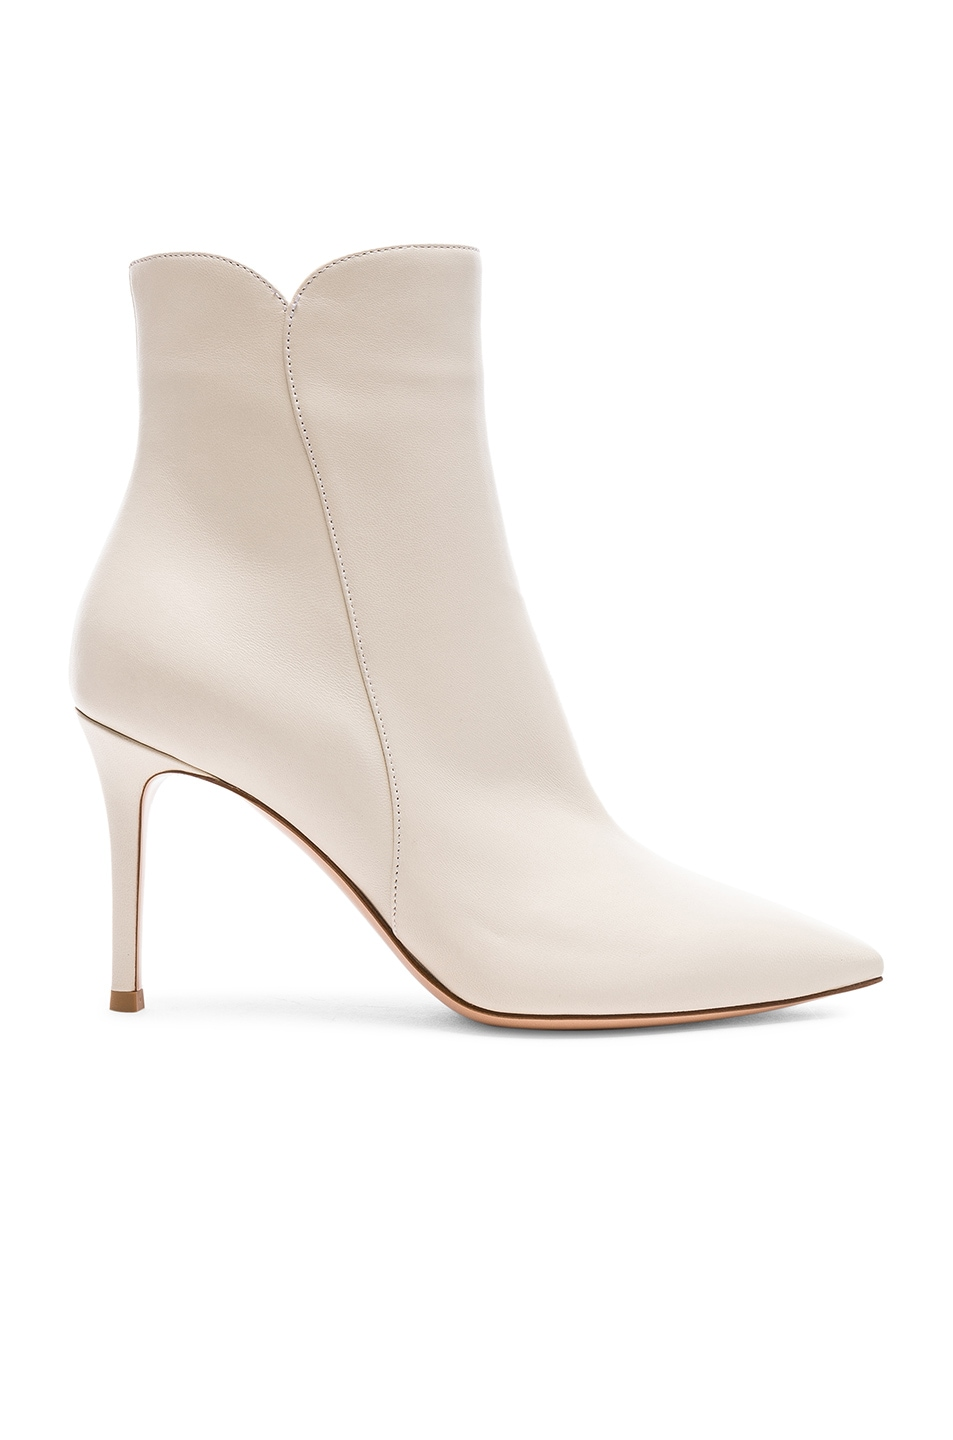 Image 1 of Gianvito Rossi Nappa Leather Levy Ankle Boots in Off White